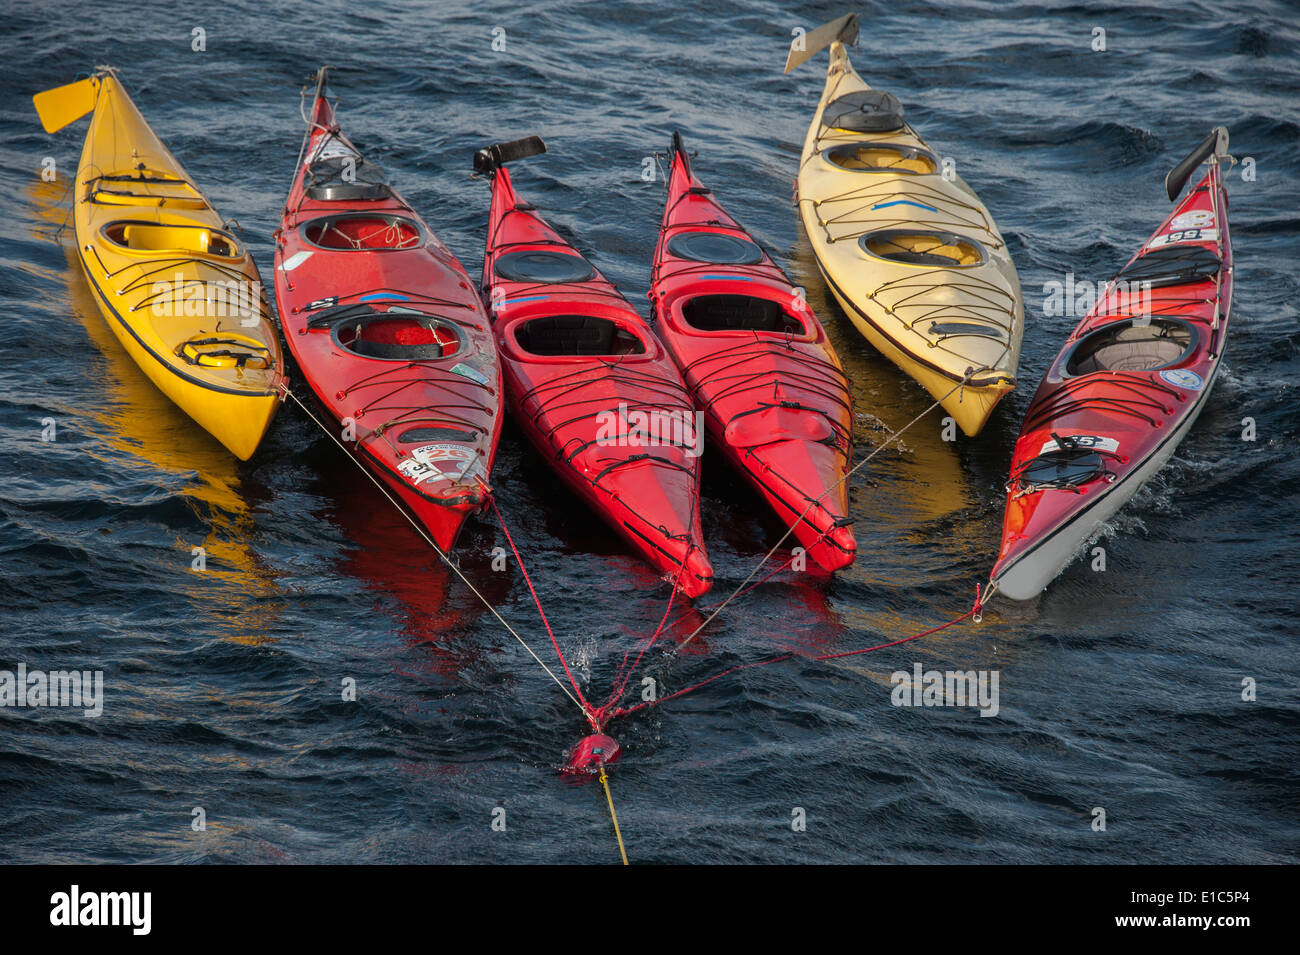 Sea kayaks moored on a long mooring rope, floating on the water surface. - Stock Image